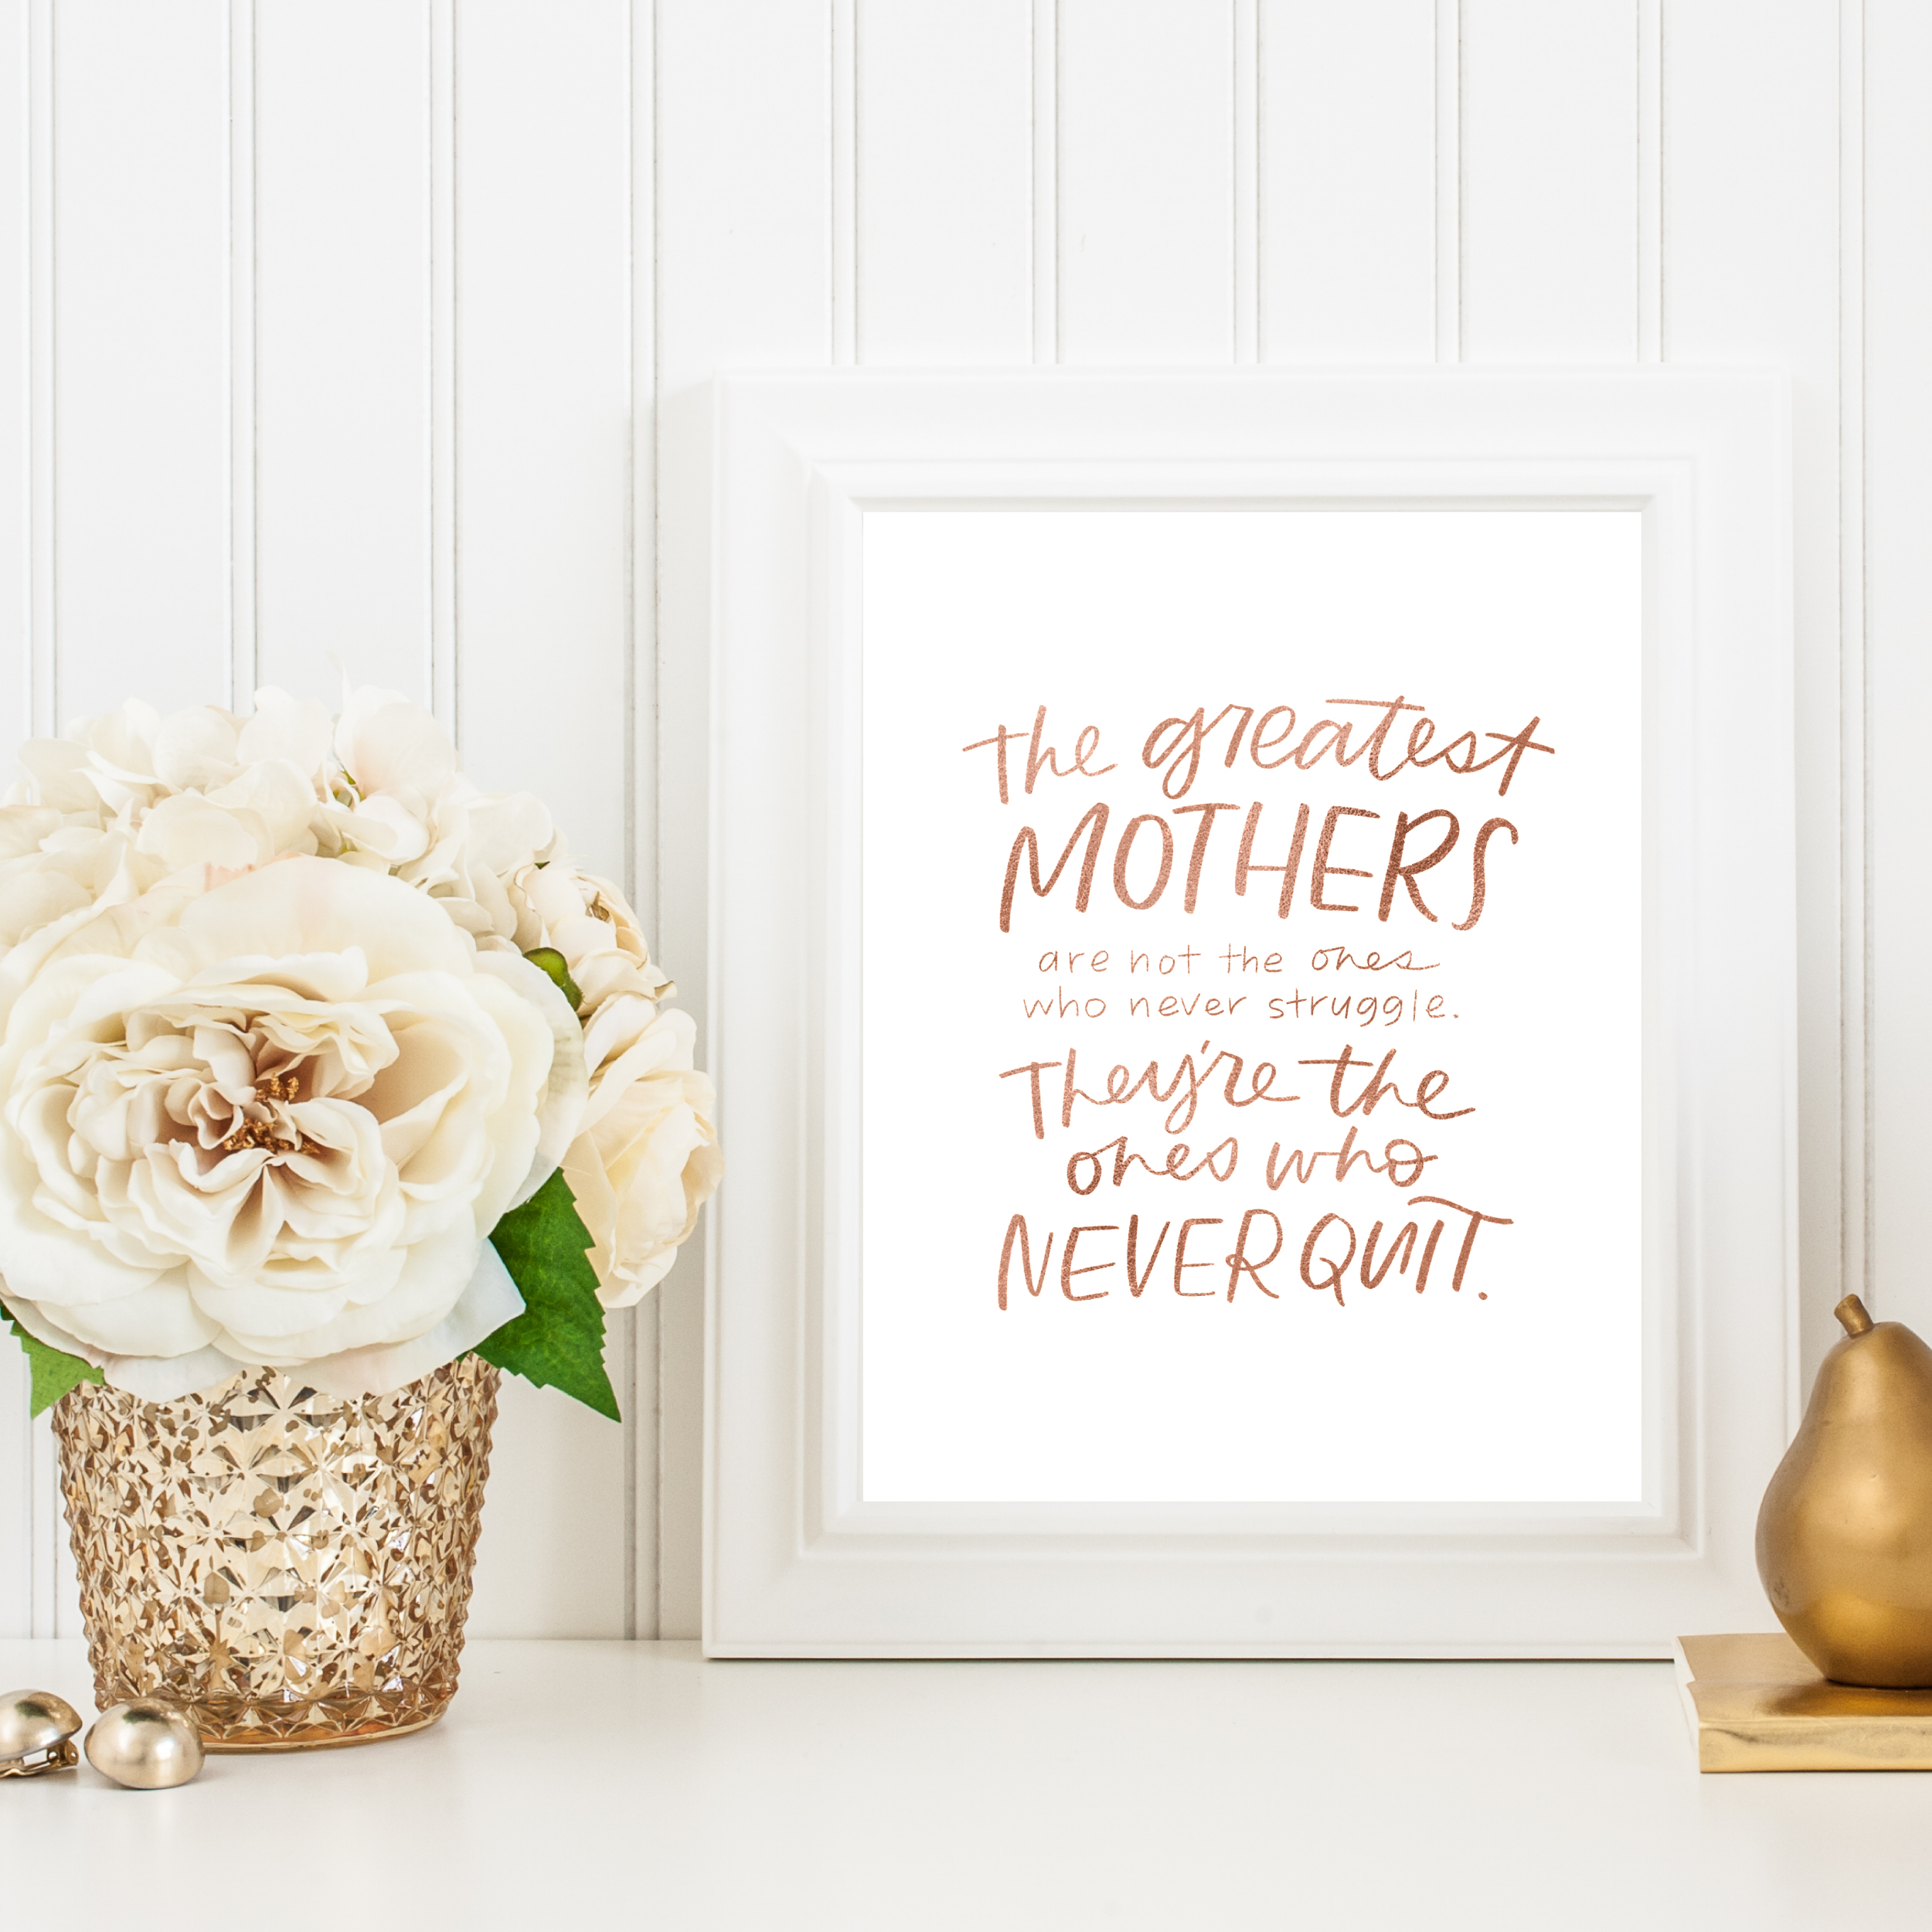 New Greatest Mother Print - Get it for just $10!